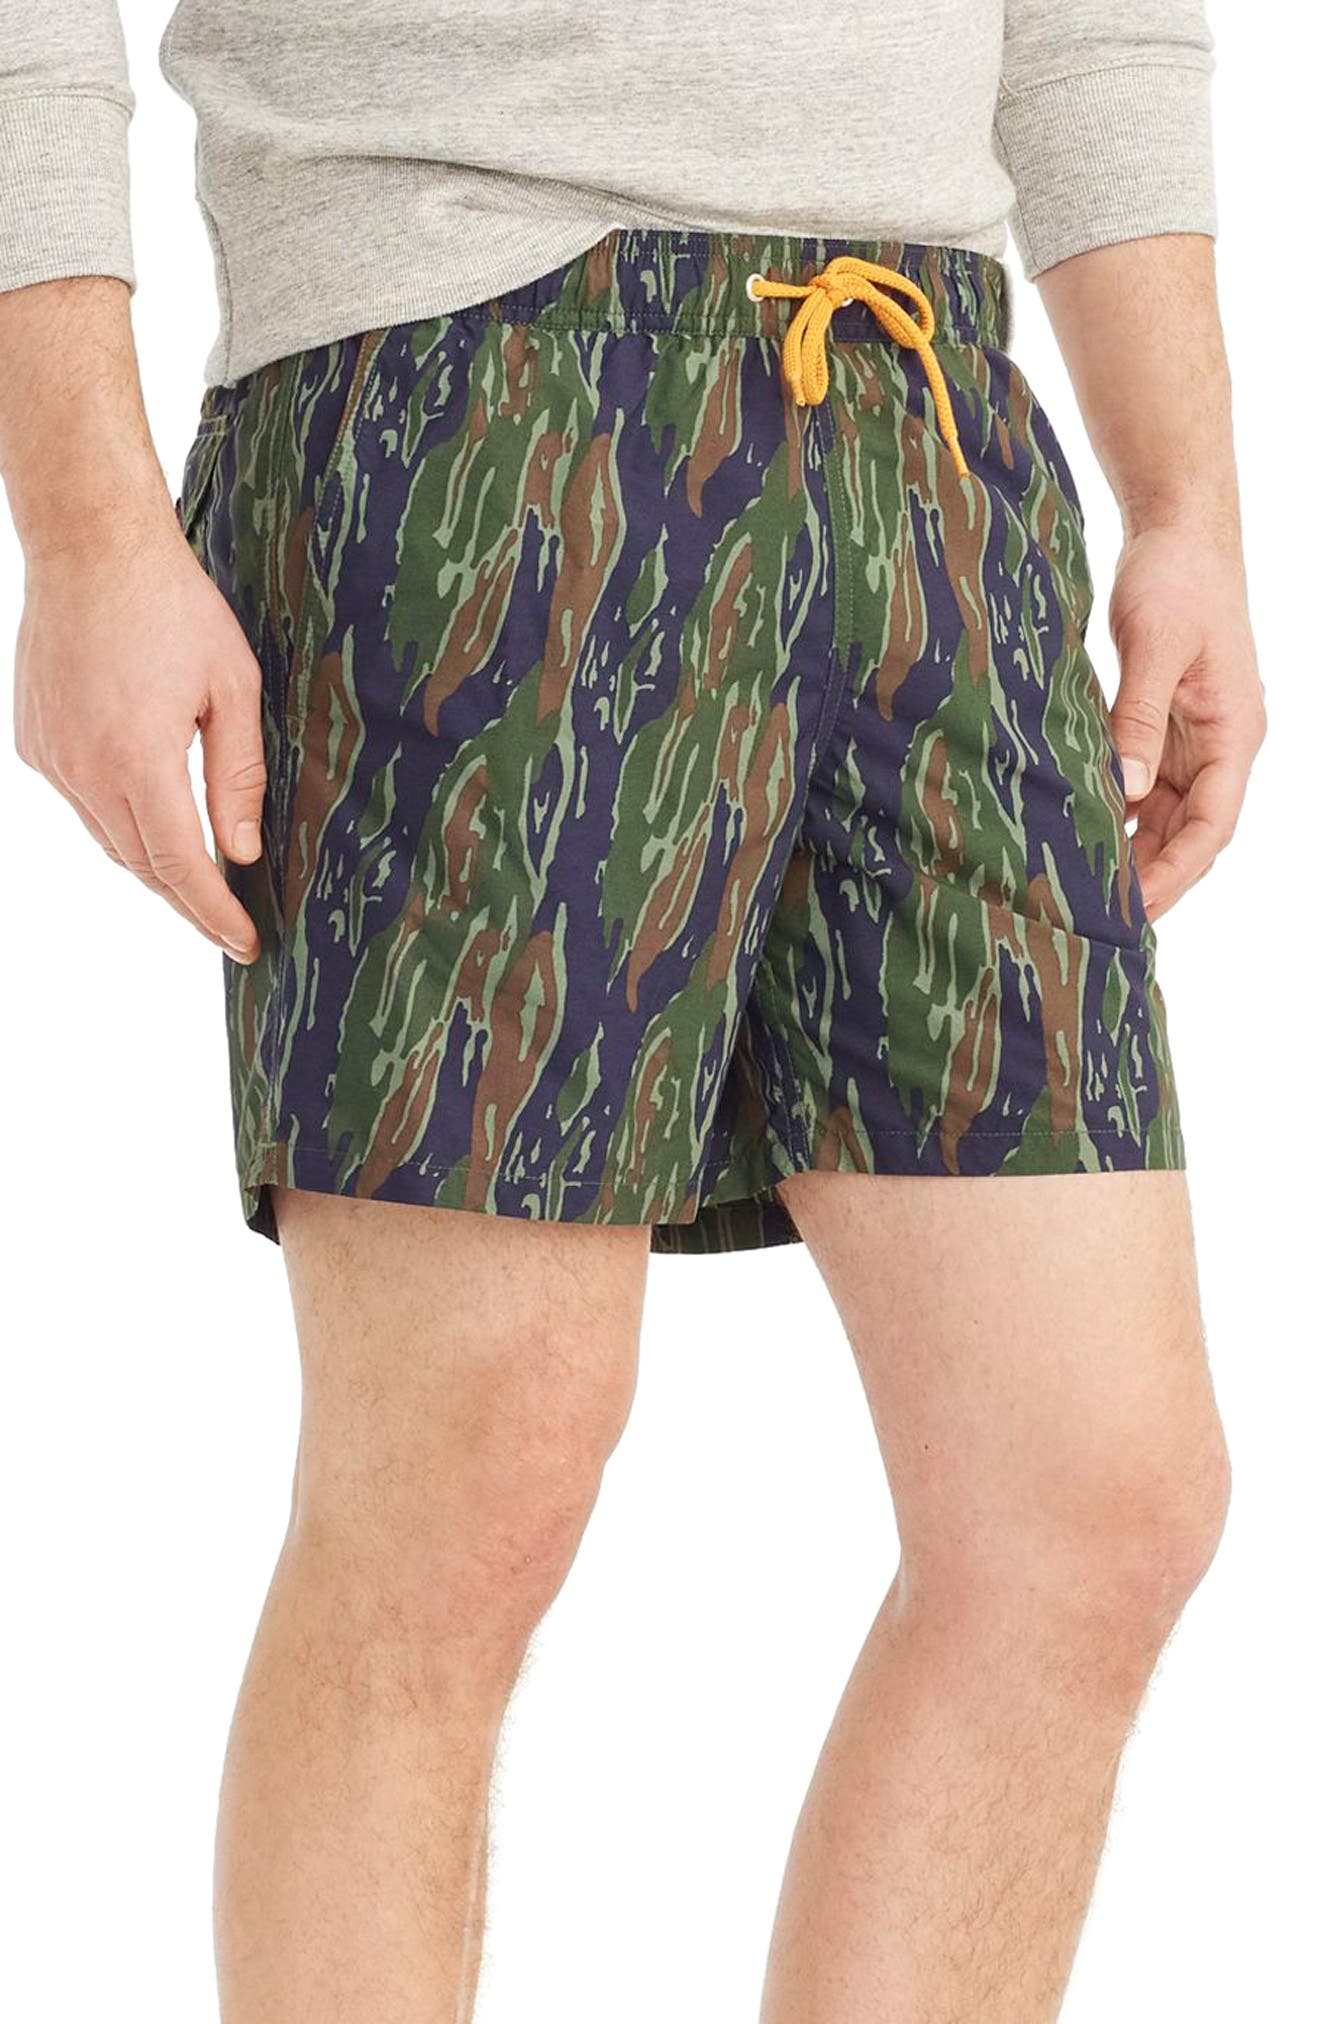 J.Crew Camo Swim Trunks,                             Alternate thumbnail 3, color,                             Tiger Stripe Camo